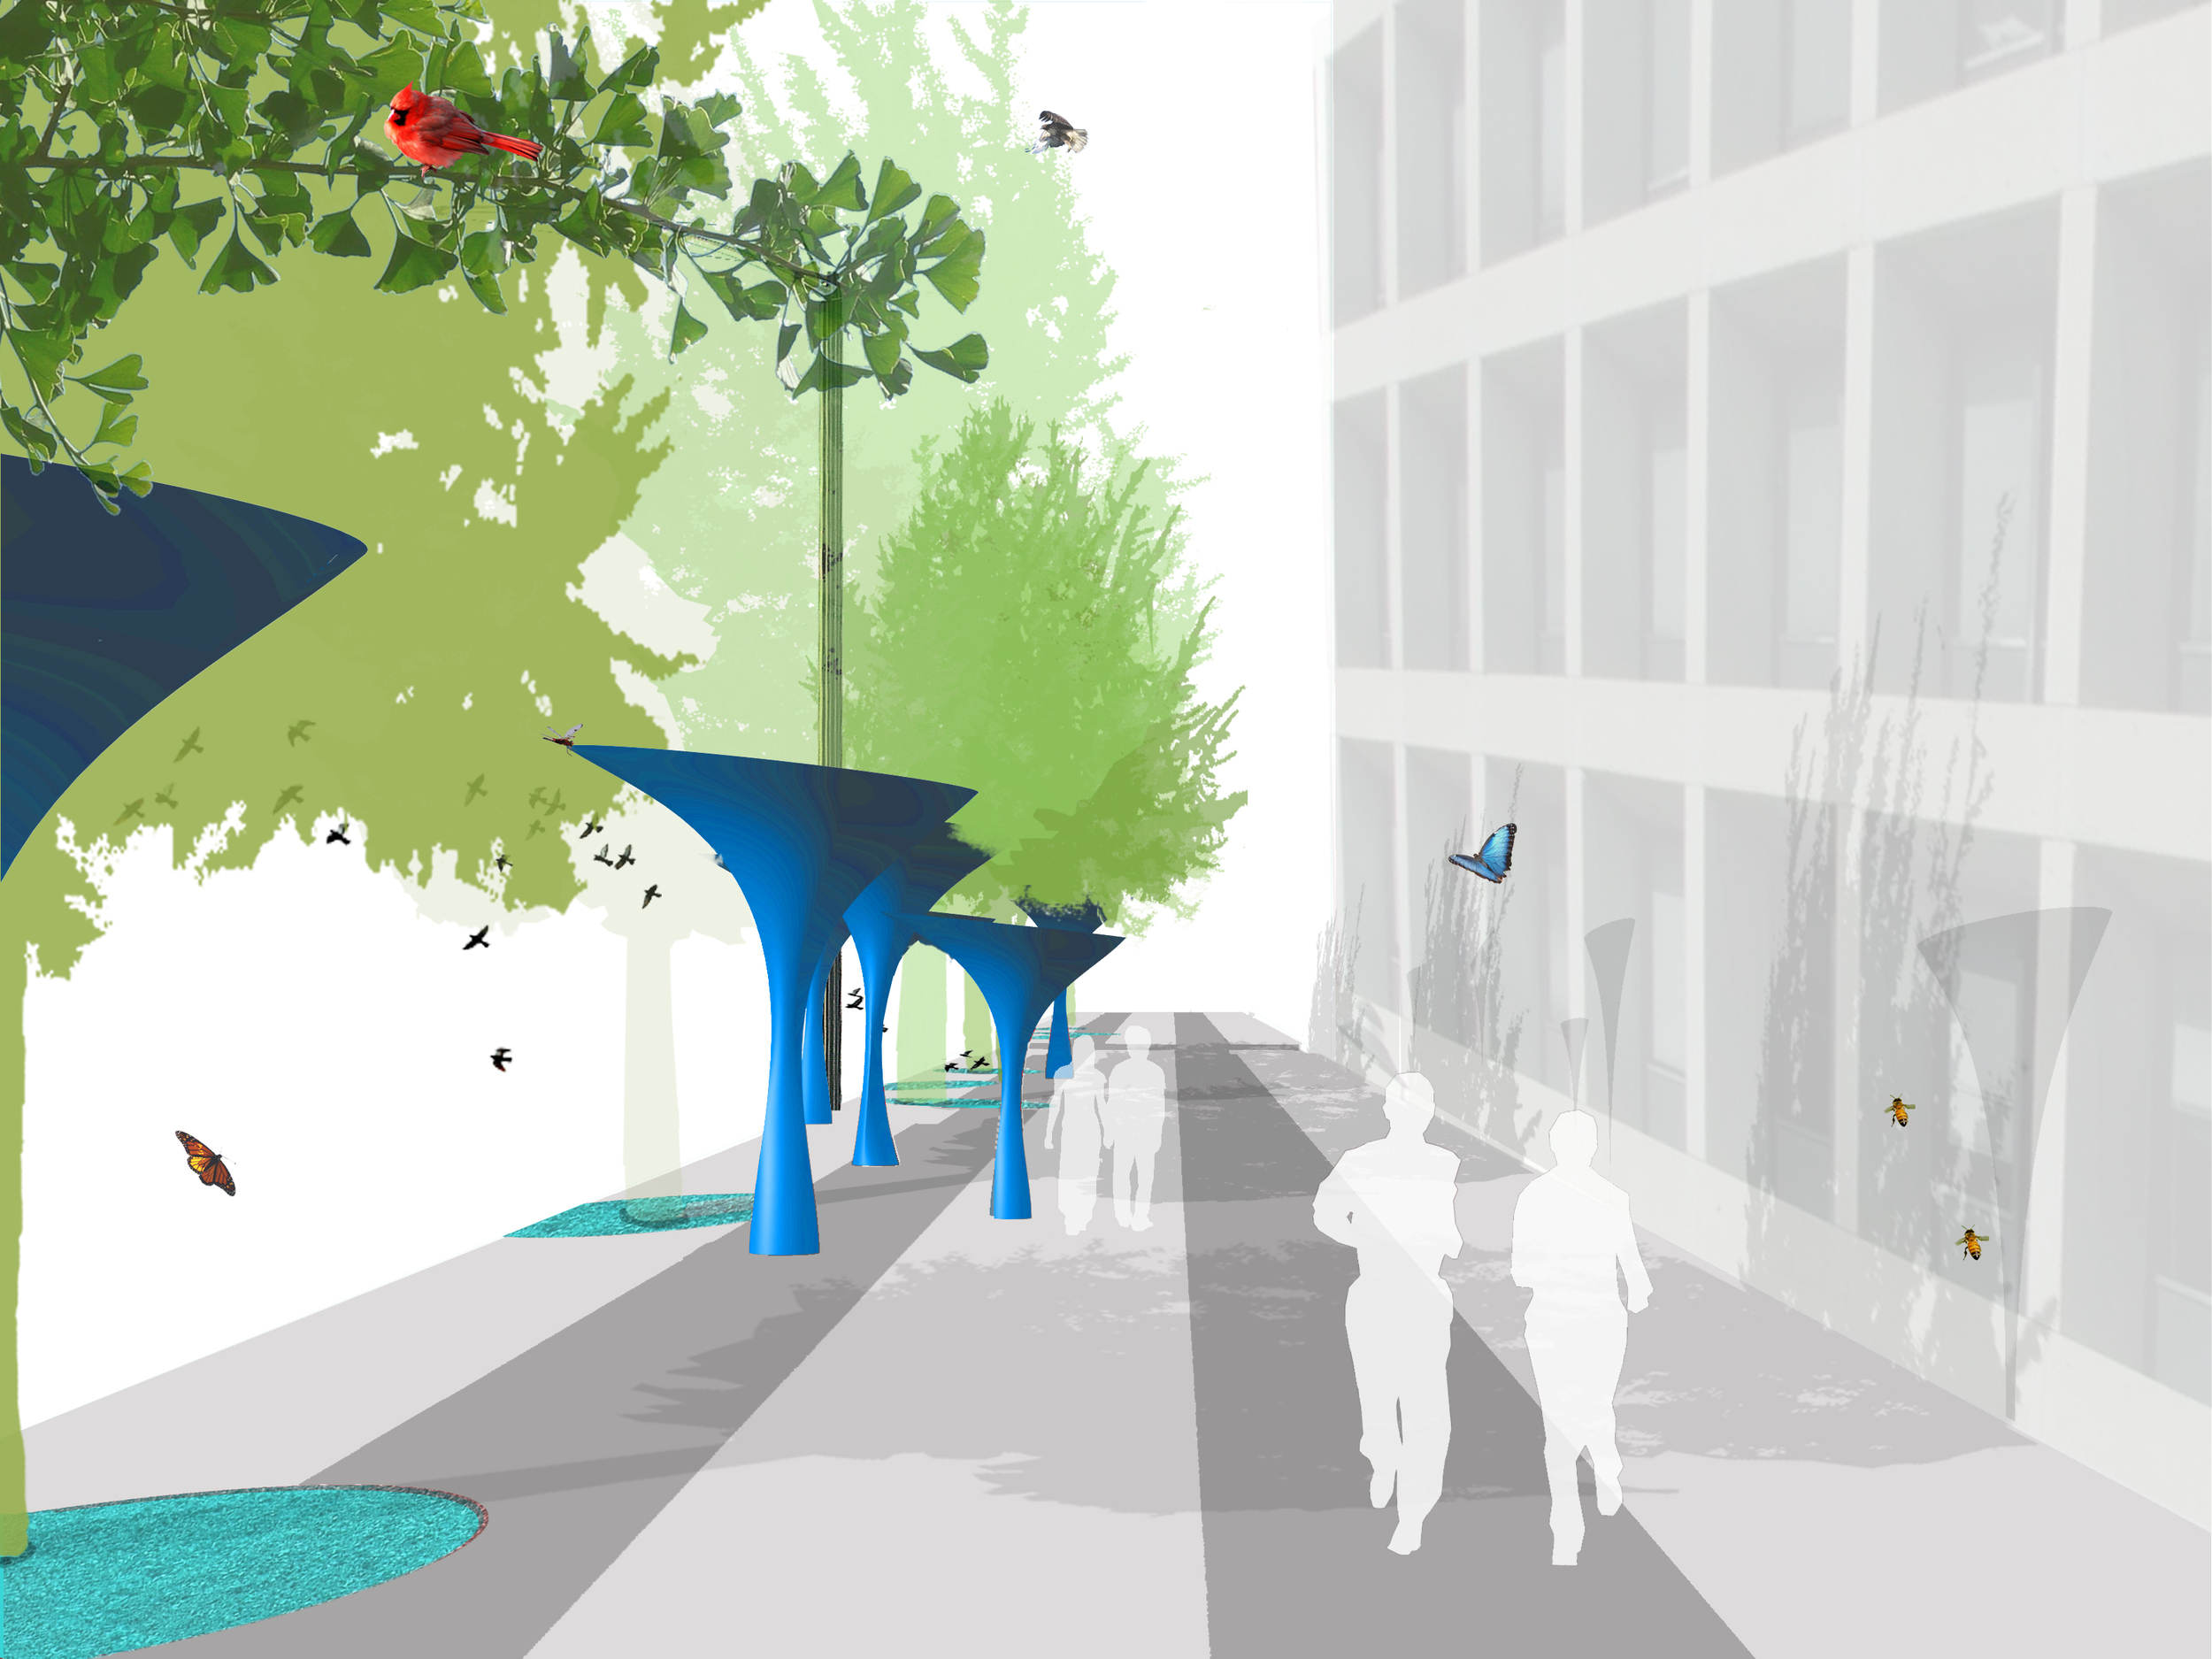 BA_Hudson Yards_GINKO TREES +WATER COLL.UMBRELLAS.jpg